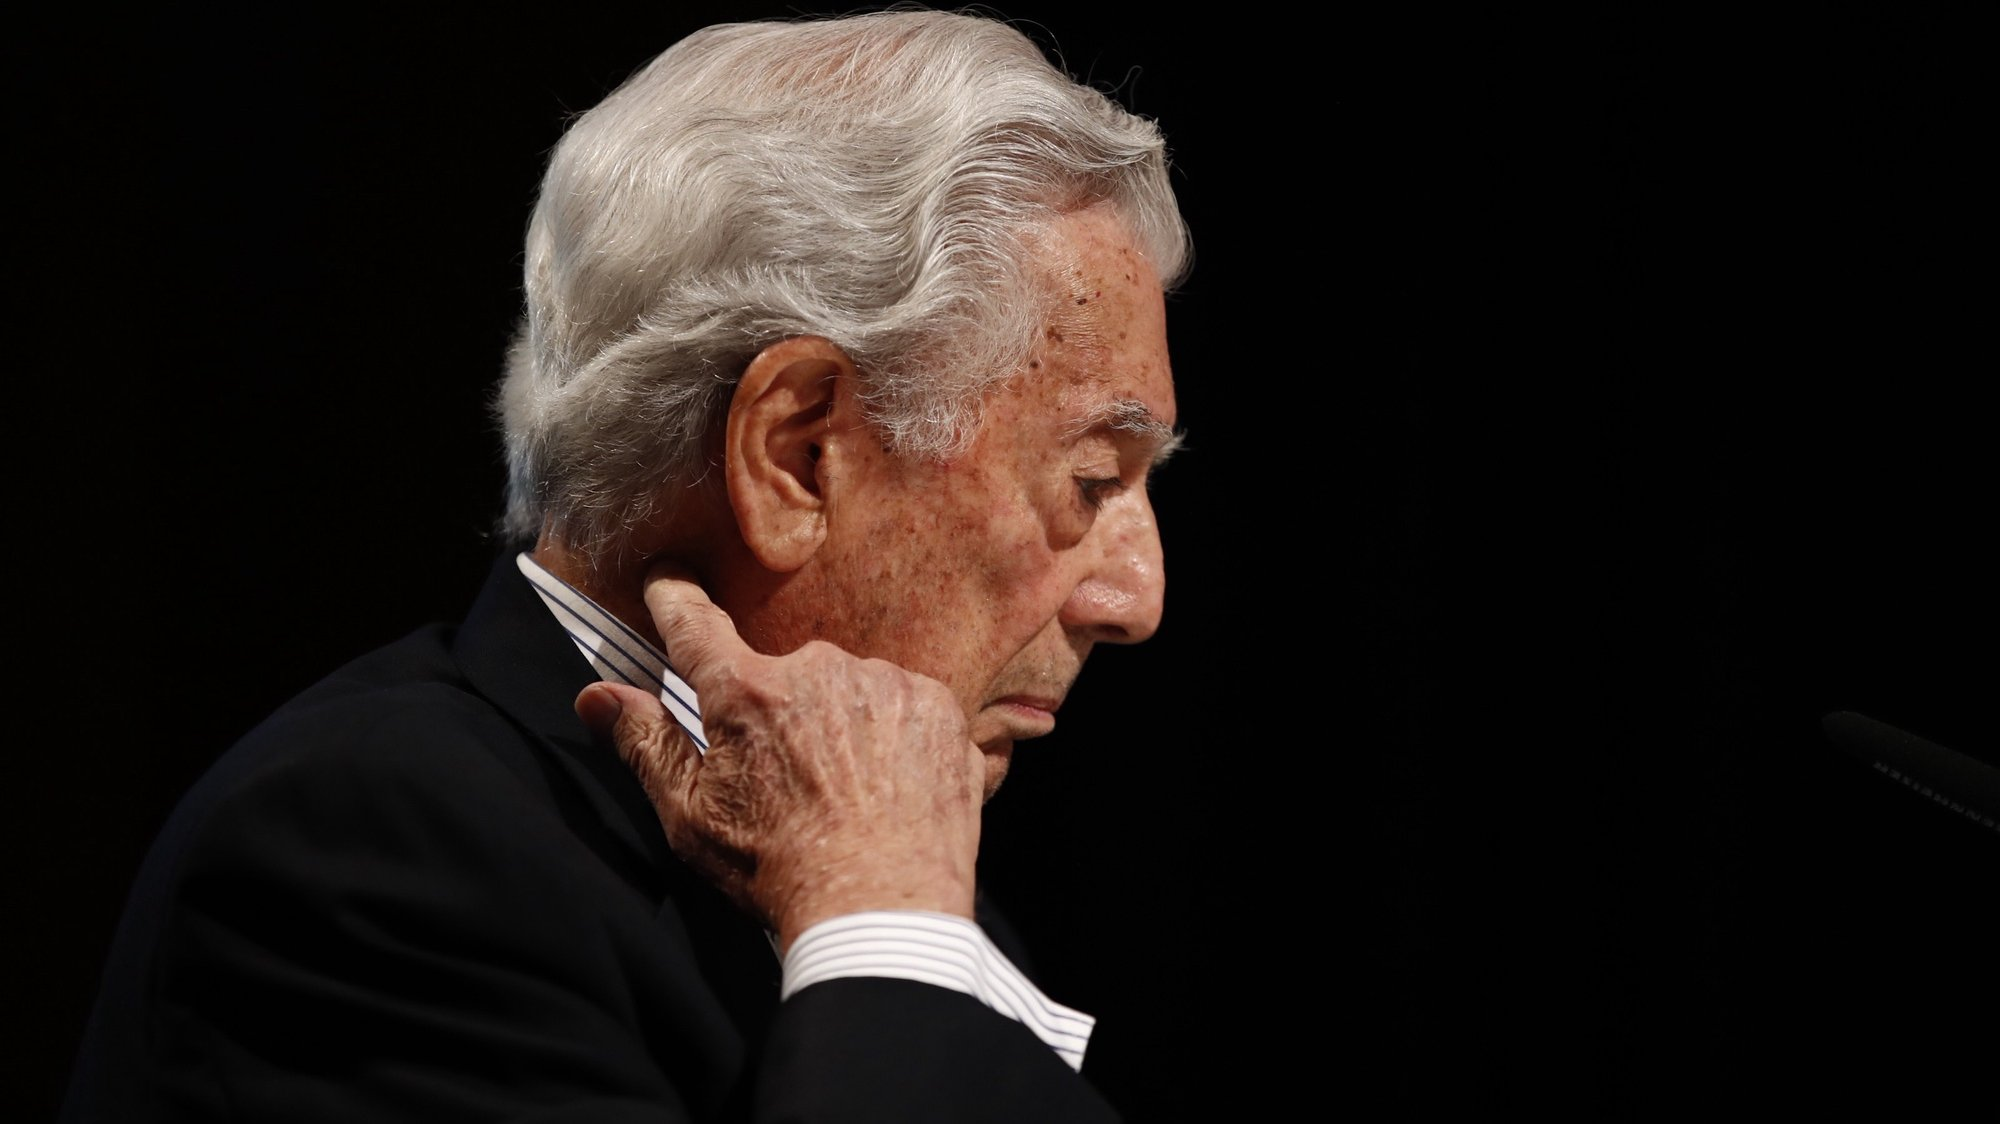 epa08730065 Peruvian writer Mario Vargas Llosa takes part in a tribute on he occasion of the 10th anniversary of his Nobel award, held at Cervantes Institute in Madrid, central Spain, 08 October 2020.  EPA/Javier Lopez